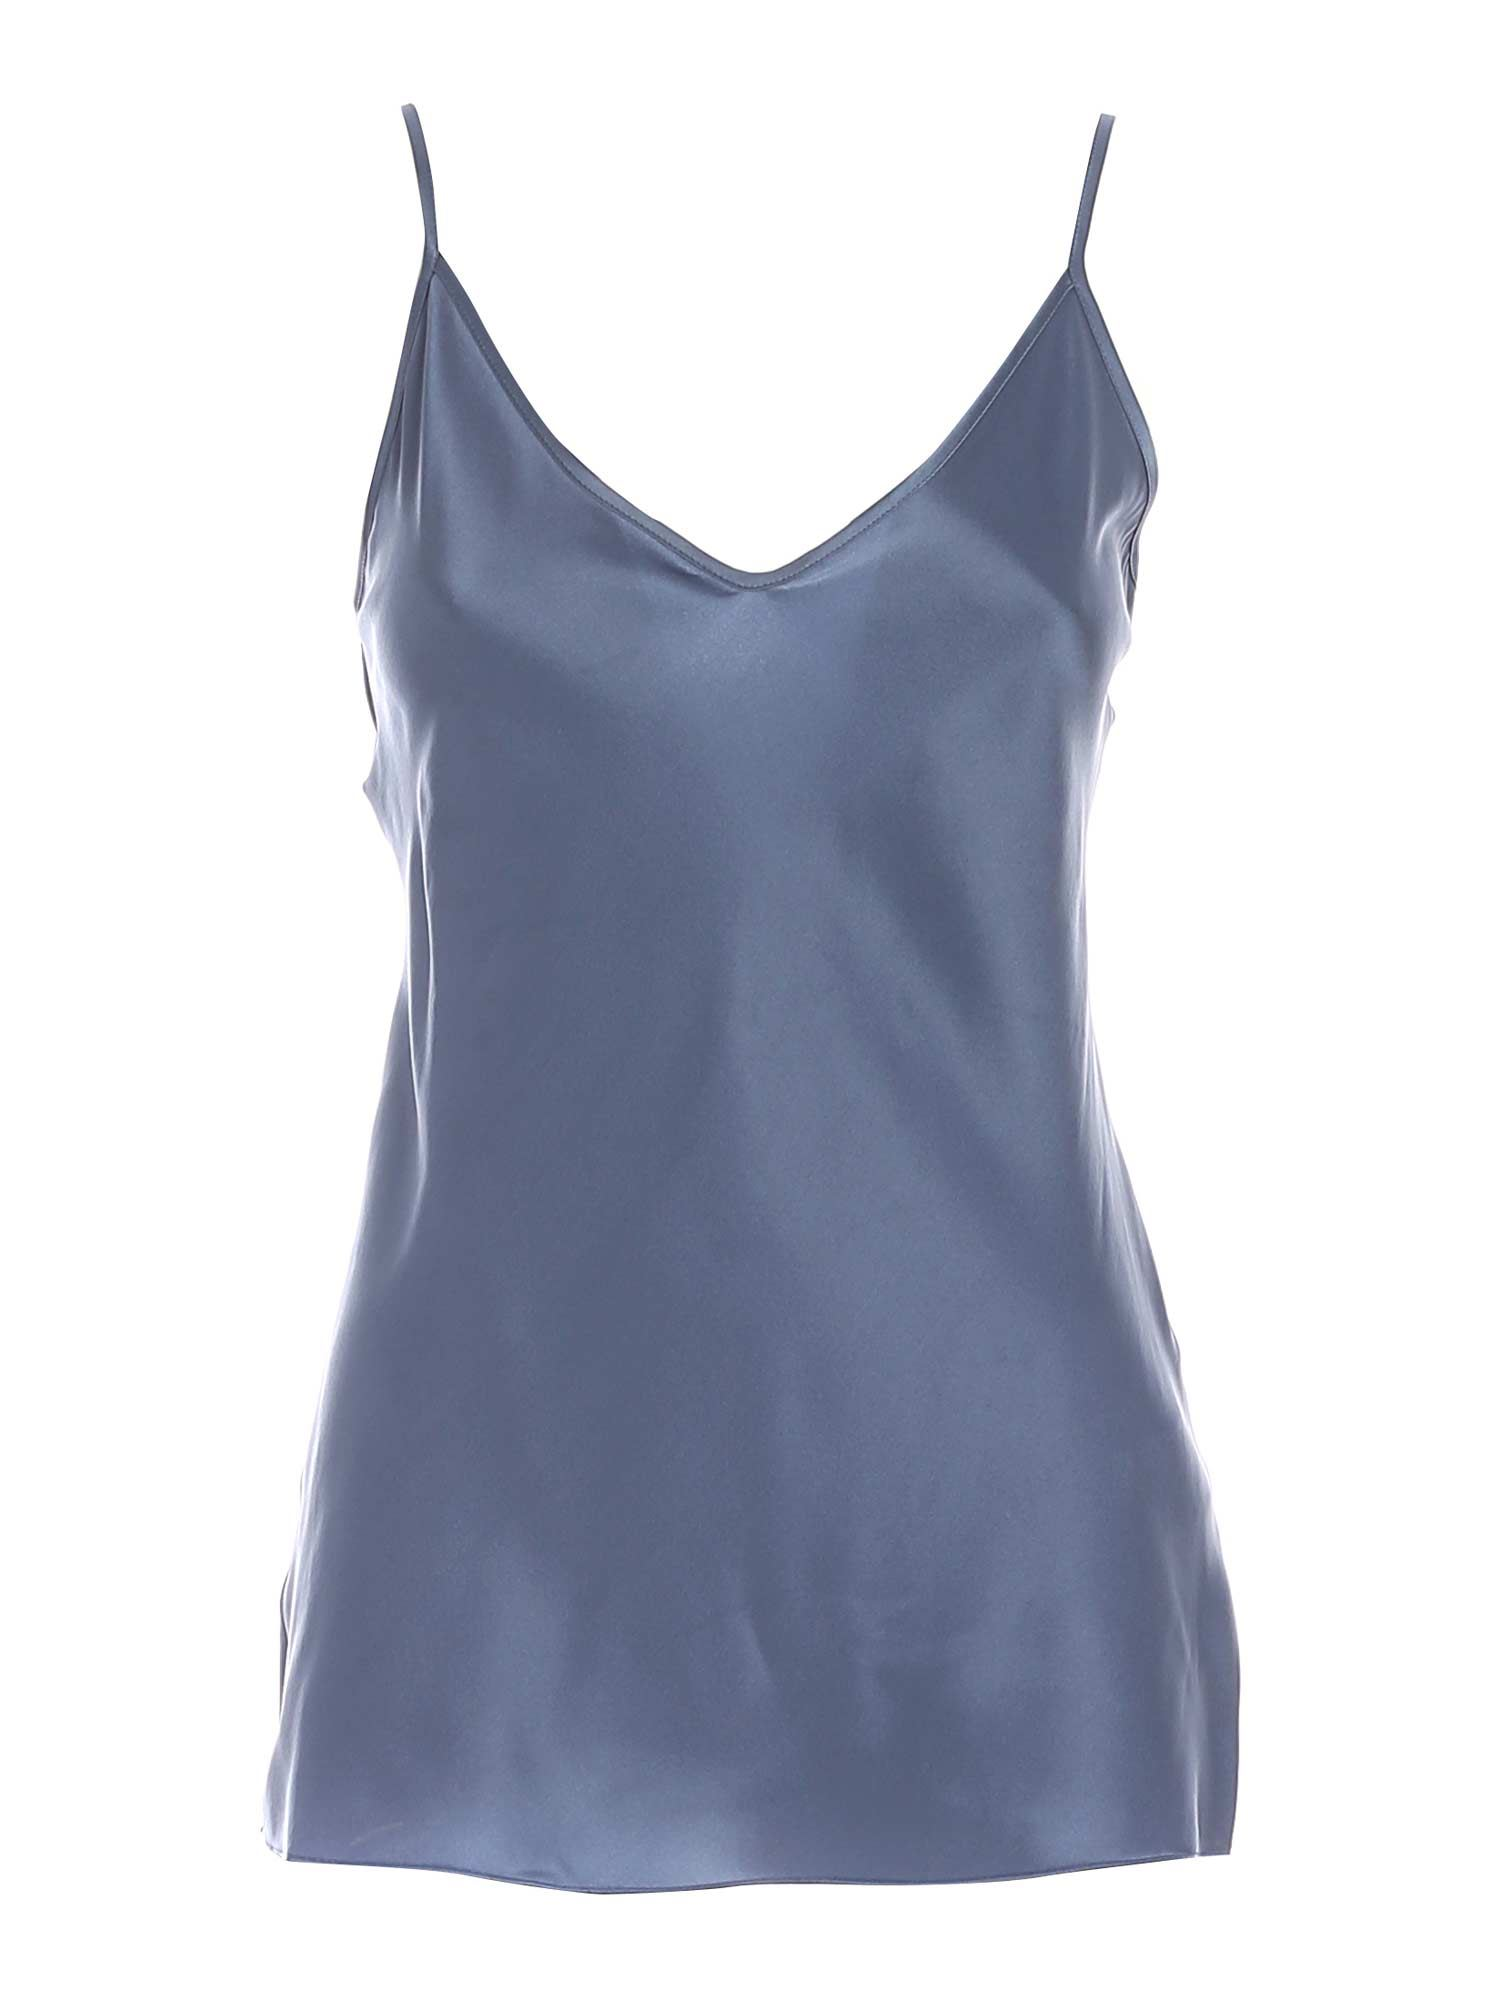 Max Mara LUCCA TOP IN PALE BLUE COLOR